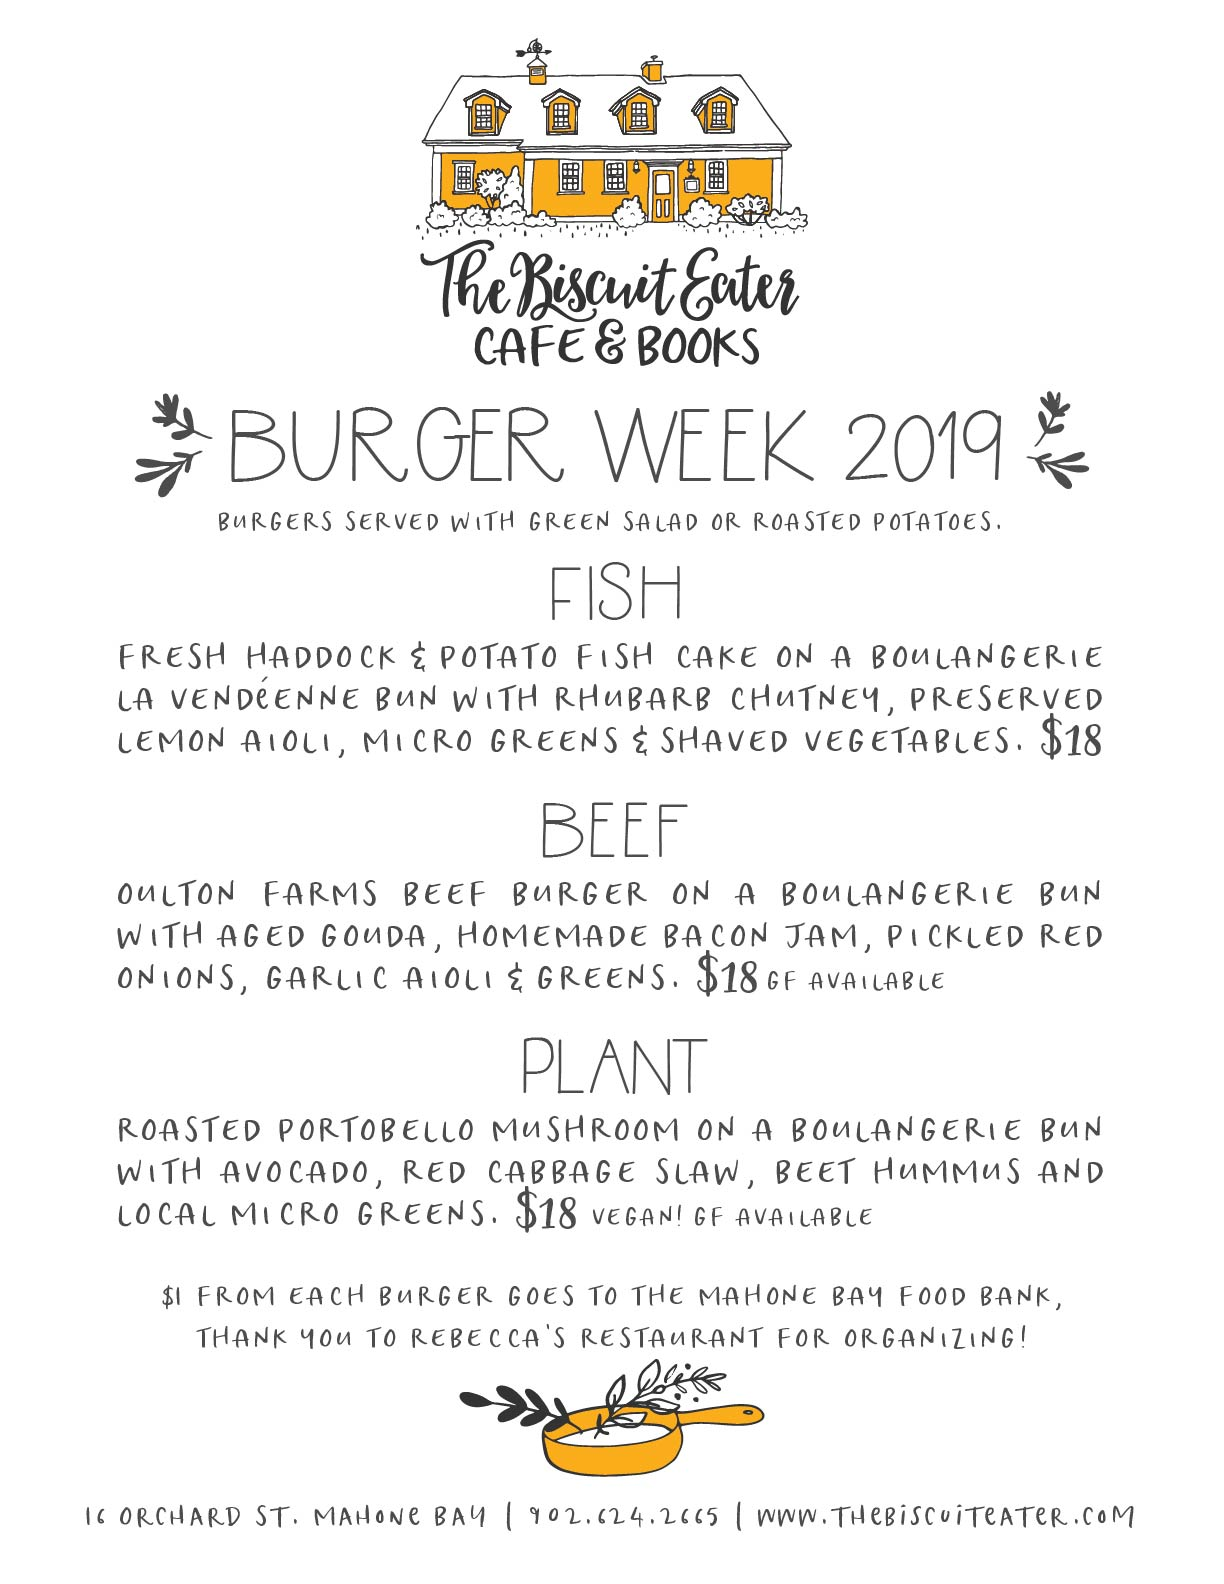 Mahone Bay Burger Week 2019 menu